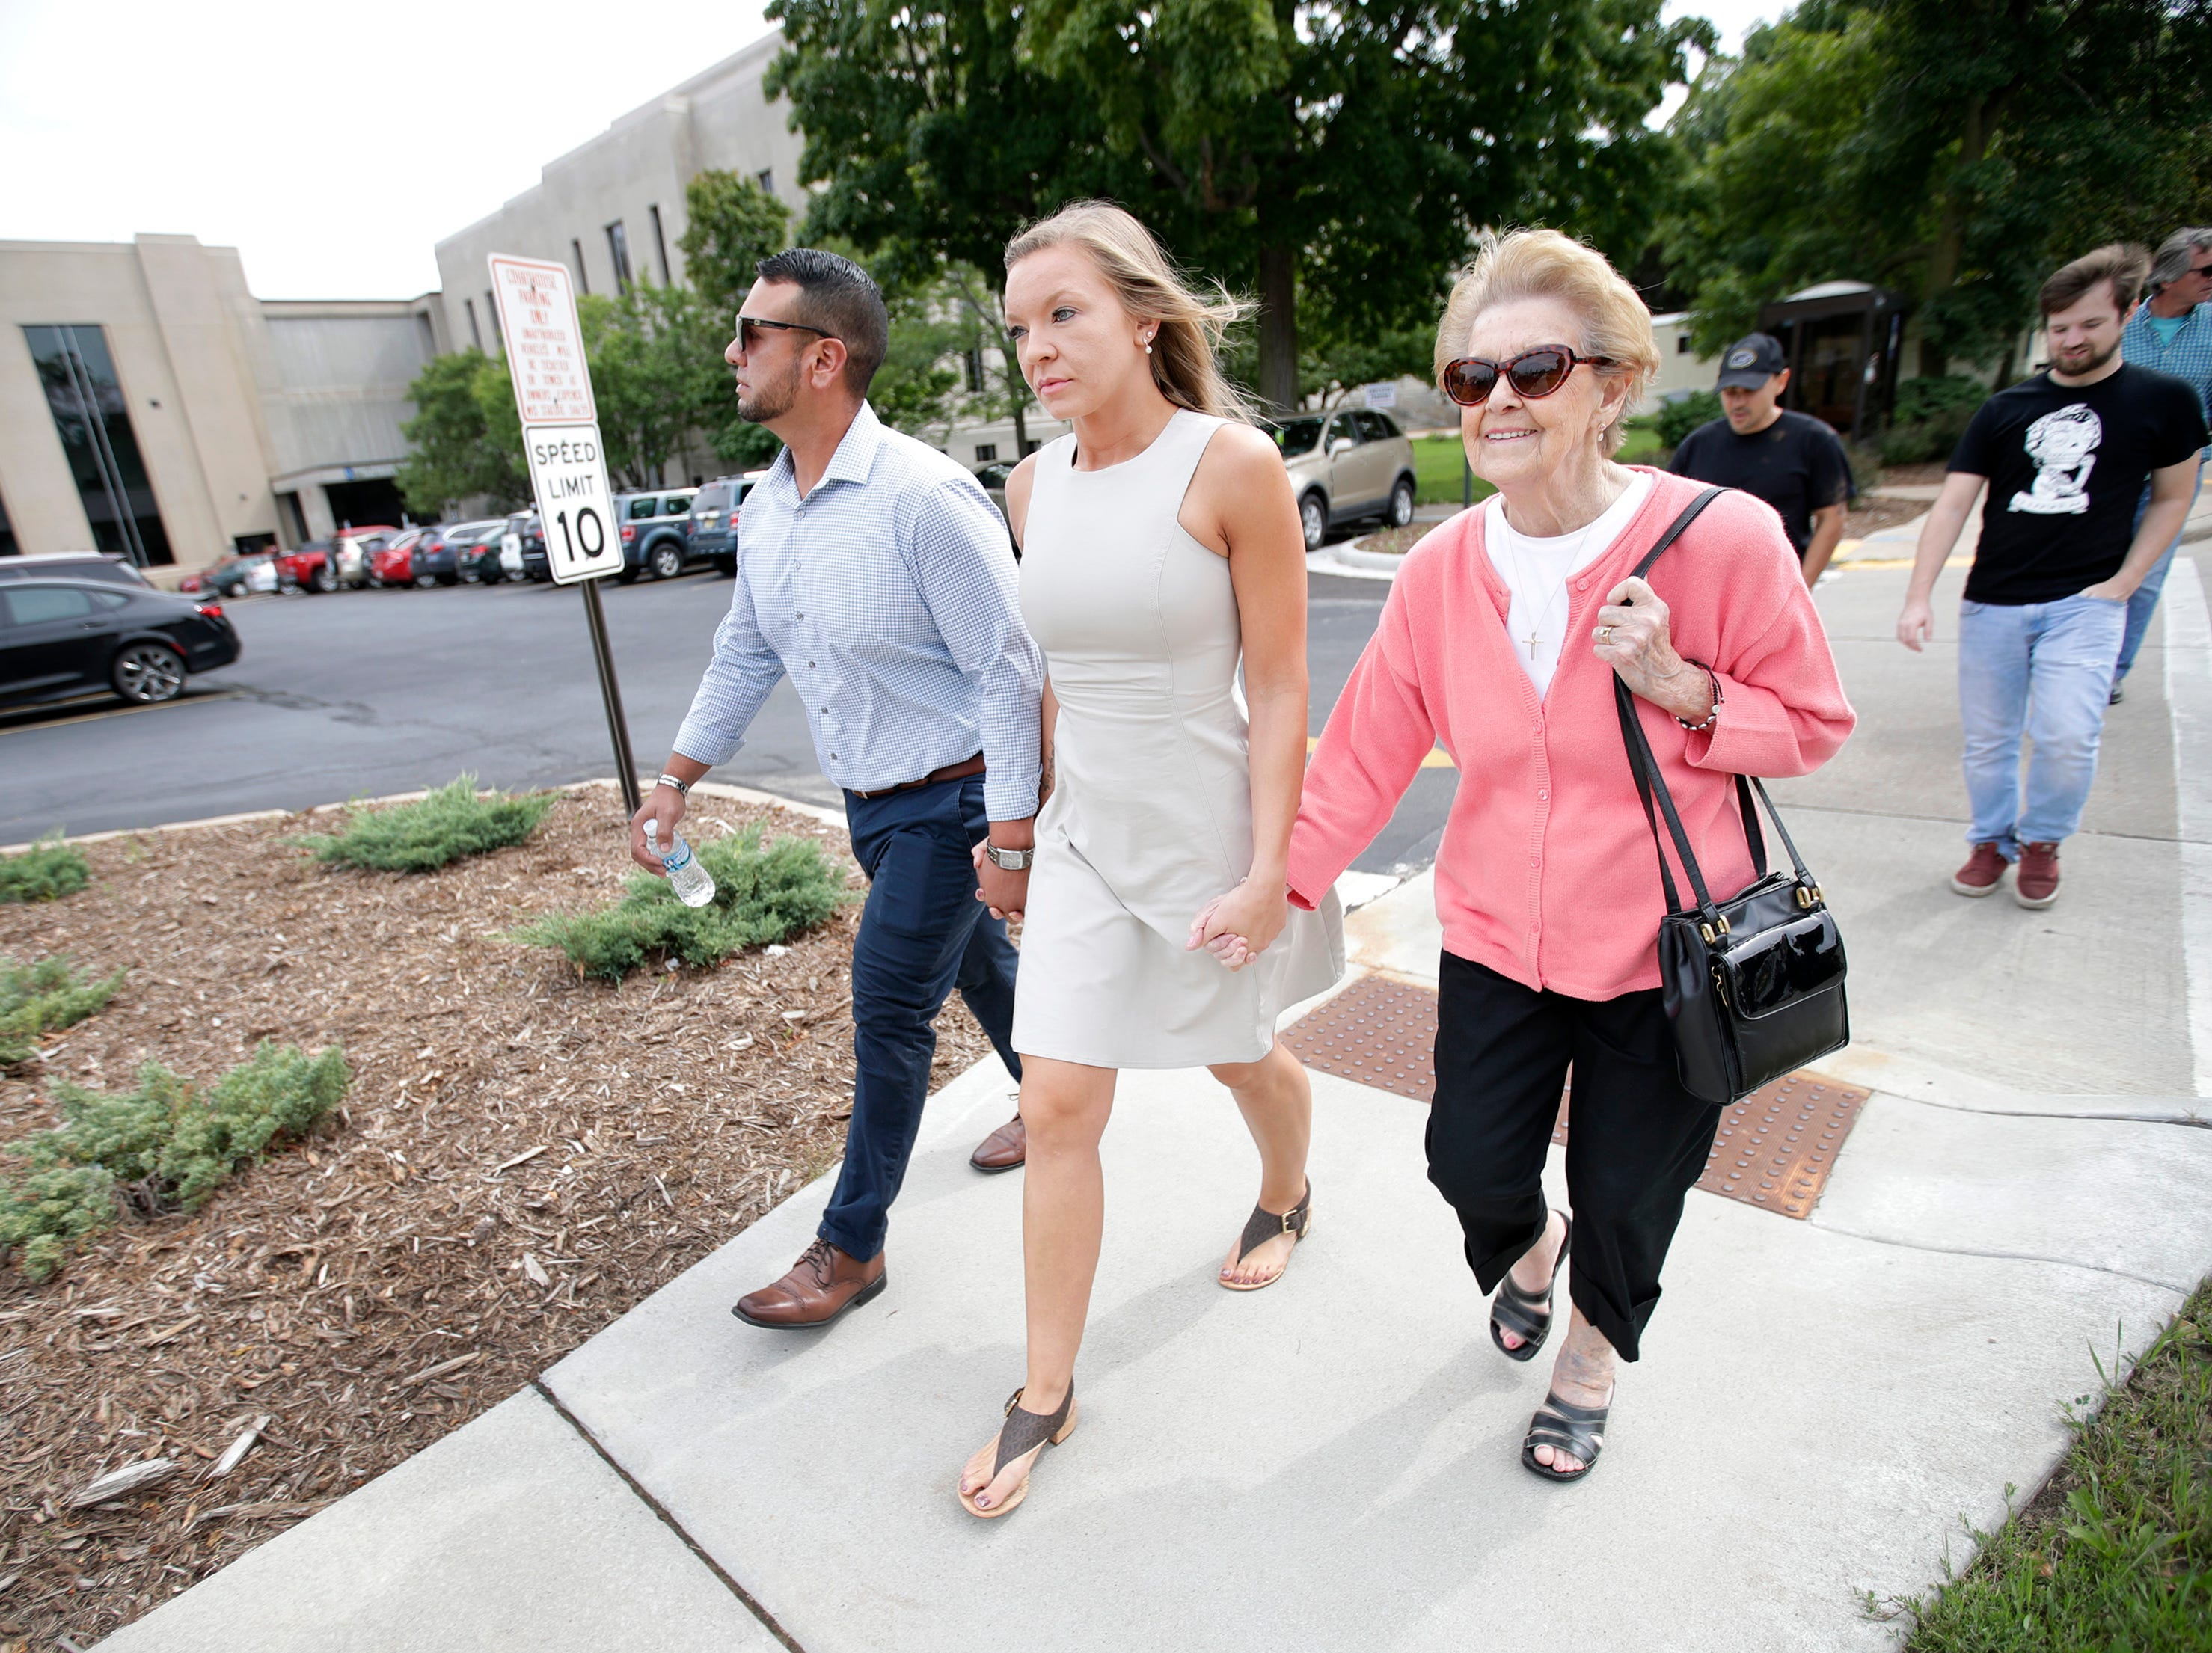 Natalie Coenen, of Appleton, walks hand in hand with her boyfriend Bruo Perez, of Appleton, and grandmother Betty Wilke, of Appleton, as she heads to her plea hearing at the Outagamie County Justice Center Friday, Sept. 7, 2018, in Appleton, Wis.